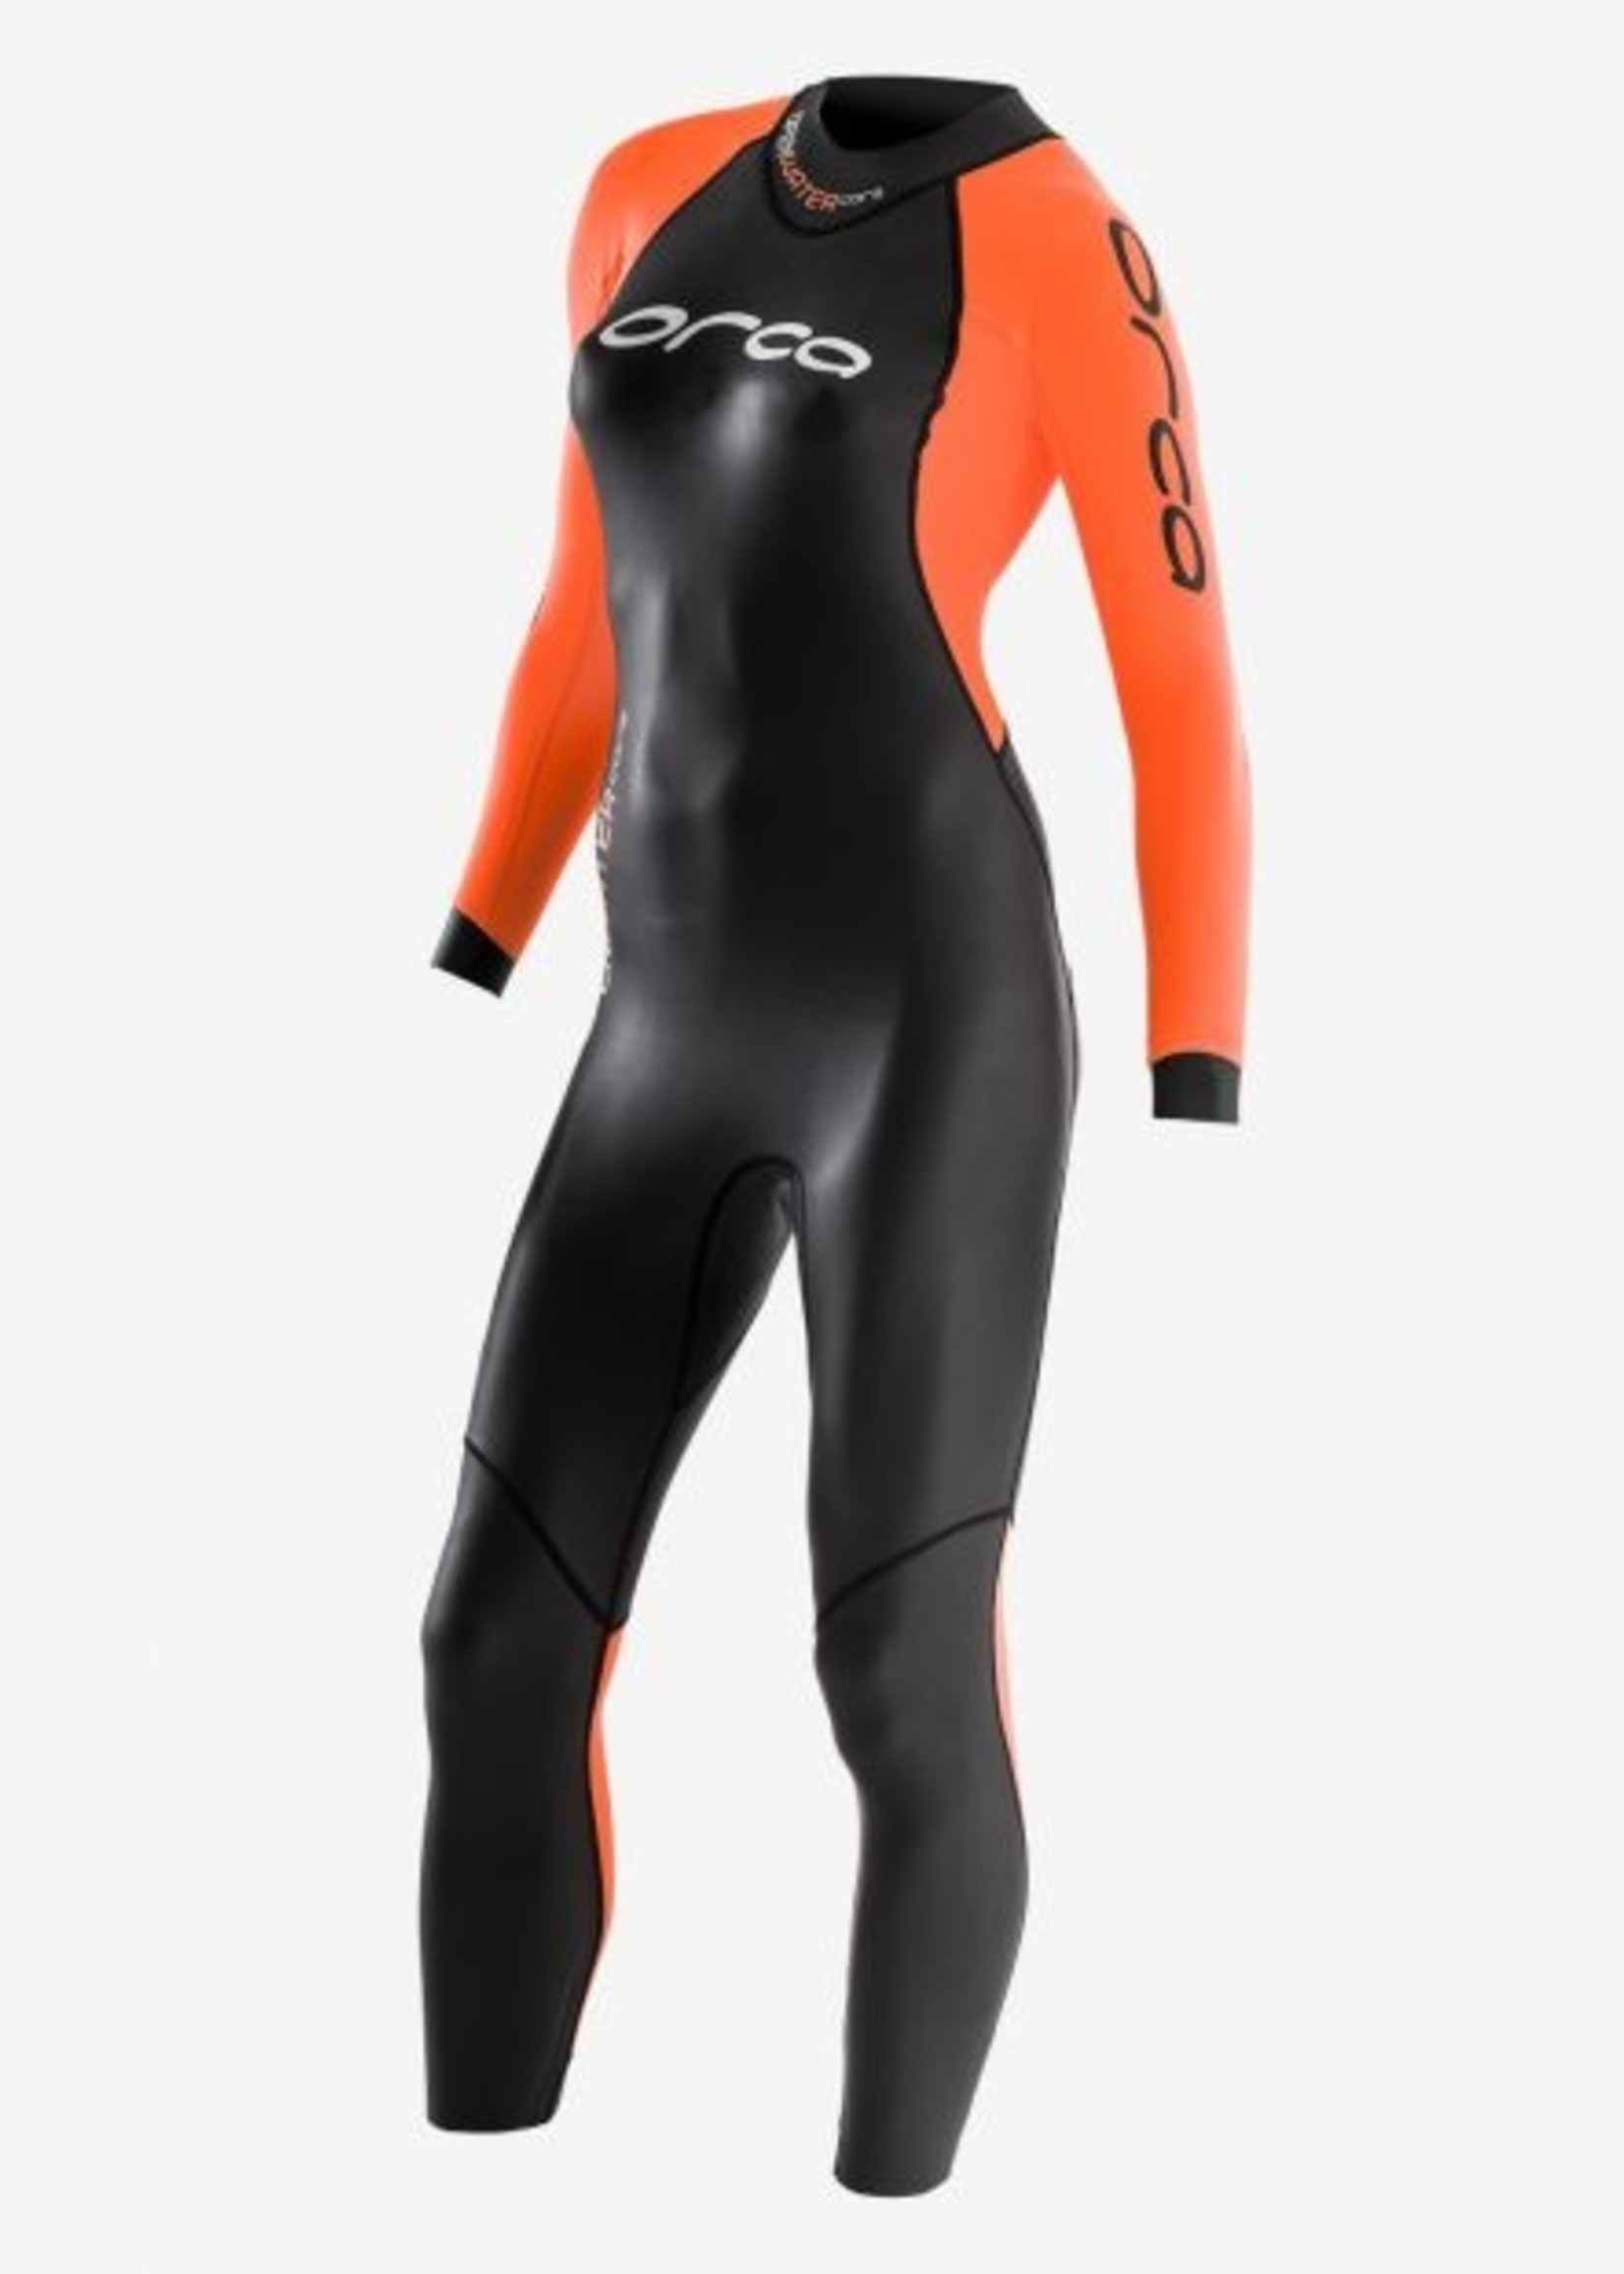 0rca Orca Core Openwater Womens Wetsuit